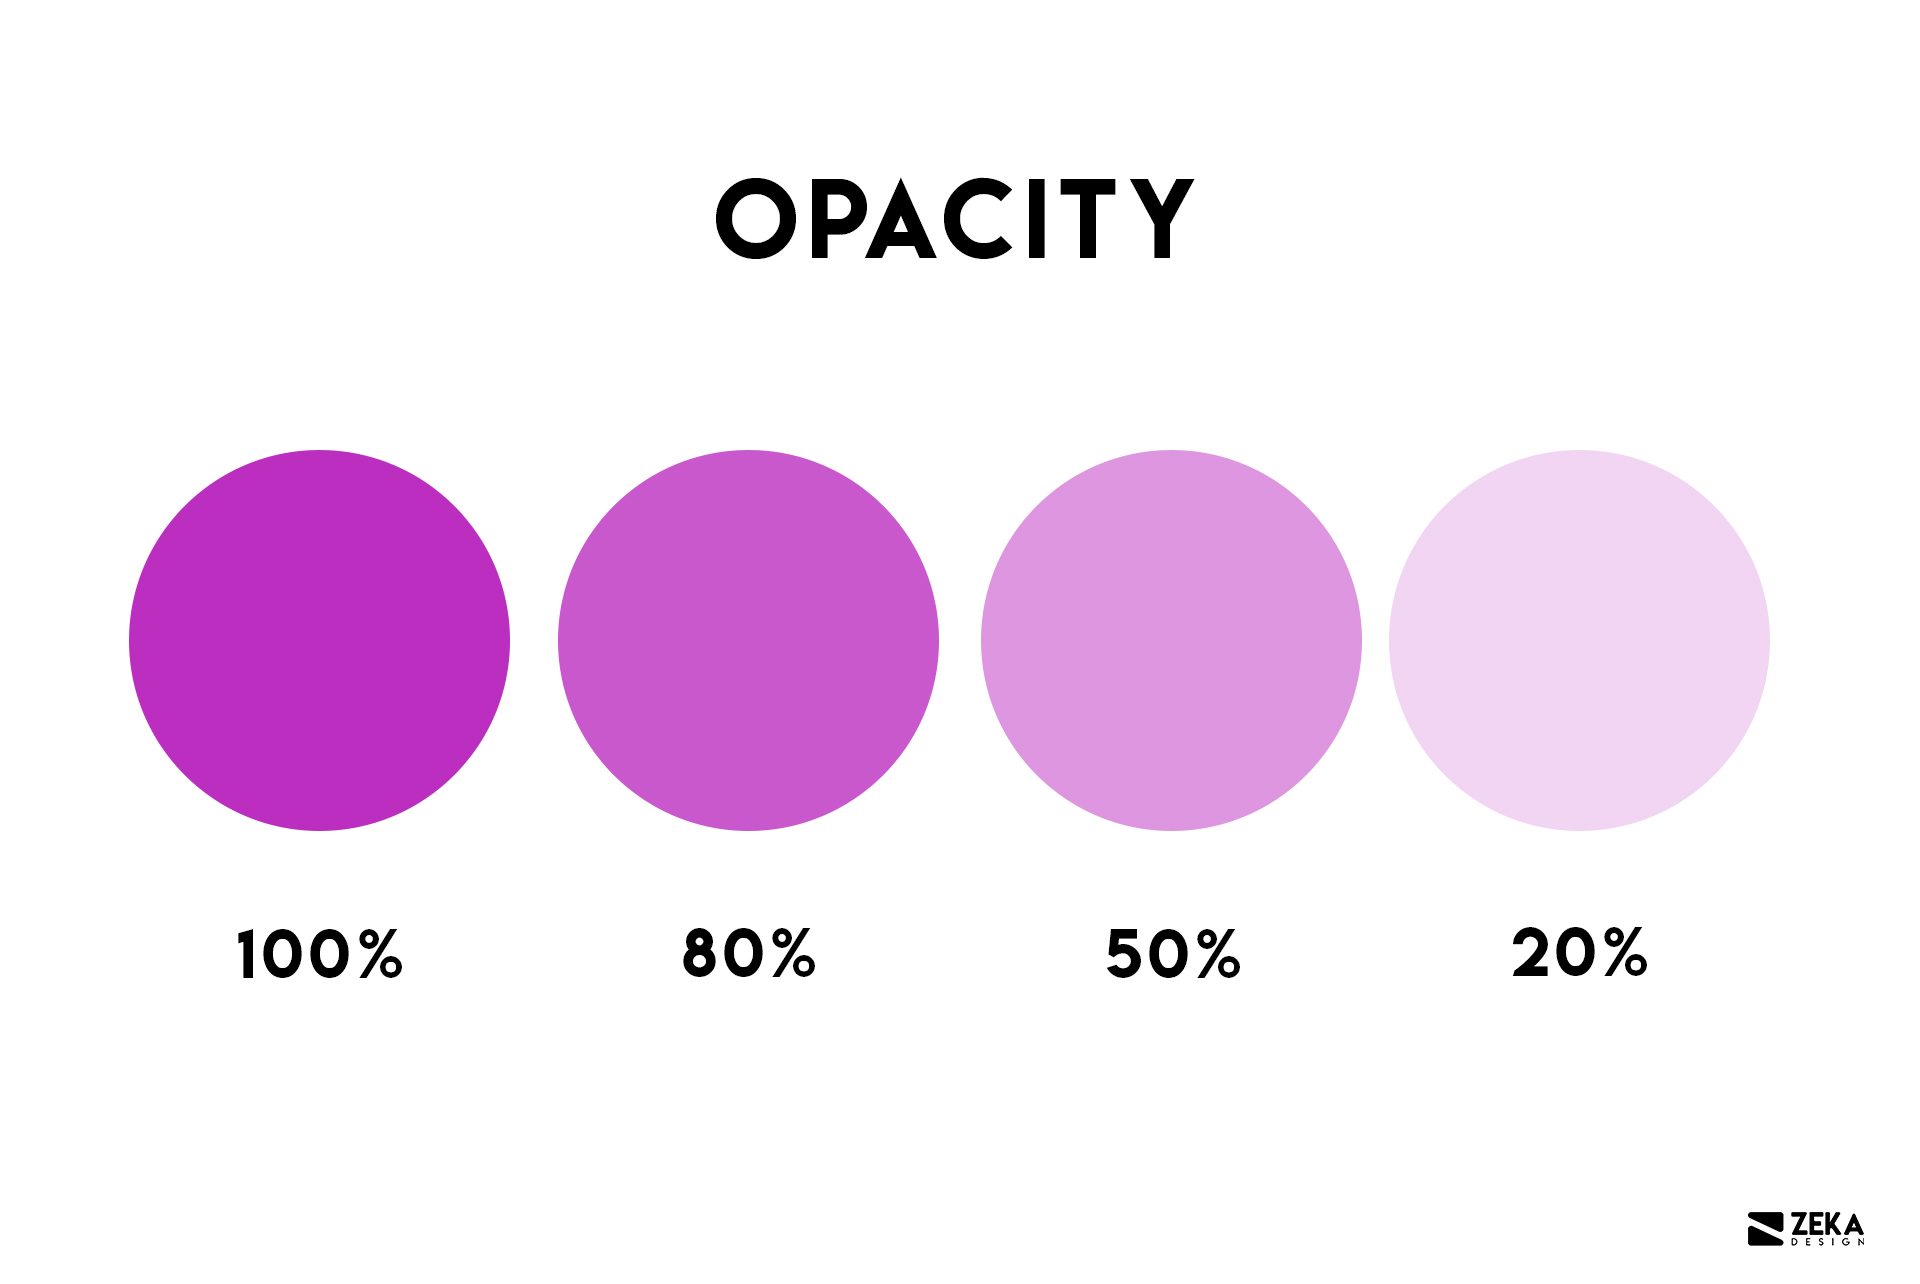 Opacity in color Graphic Design terms